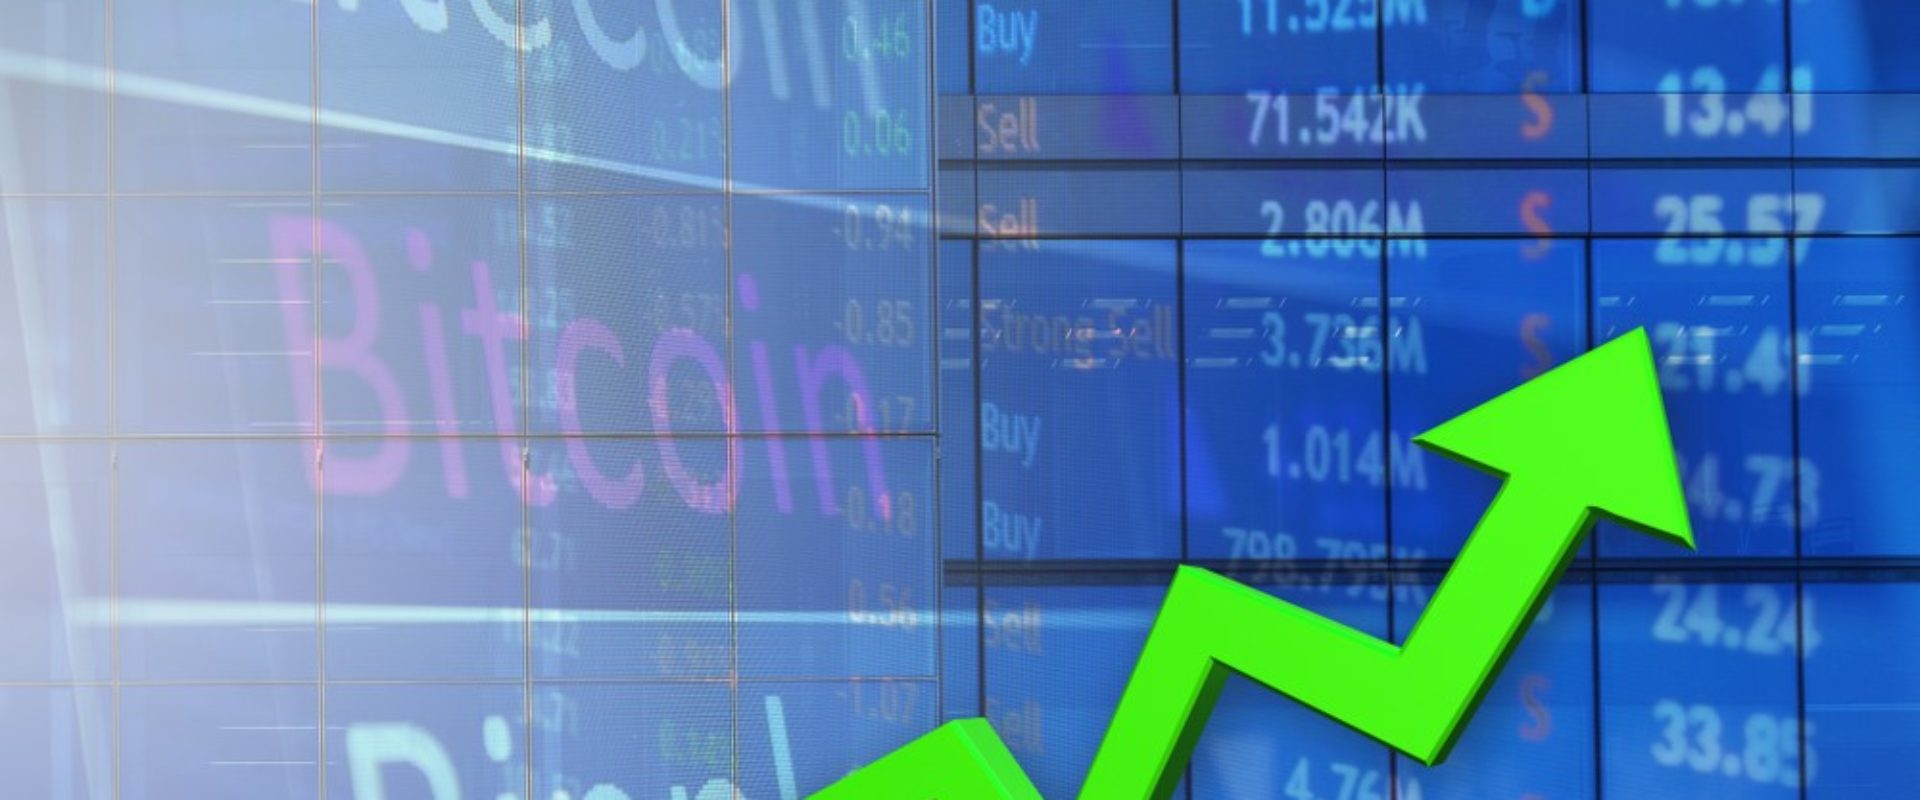 Crypto Market Aims $250 Billion Cap: Bitcoin Cash, Litecoin, EOS, XLM Analysis